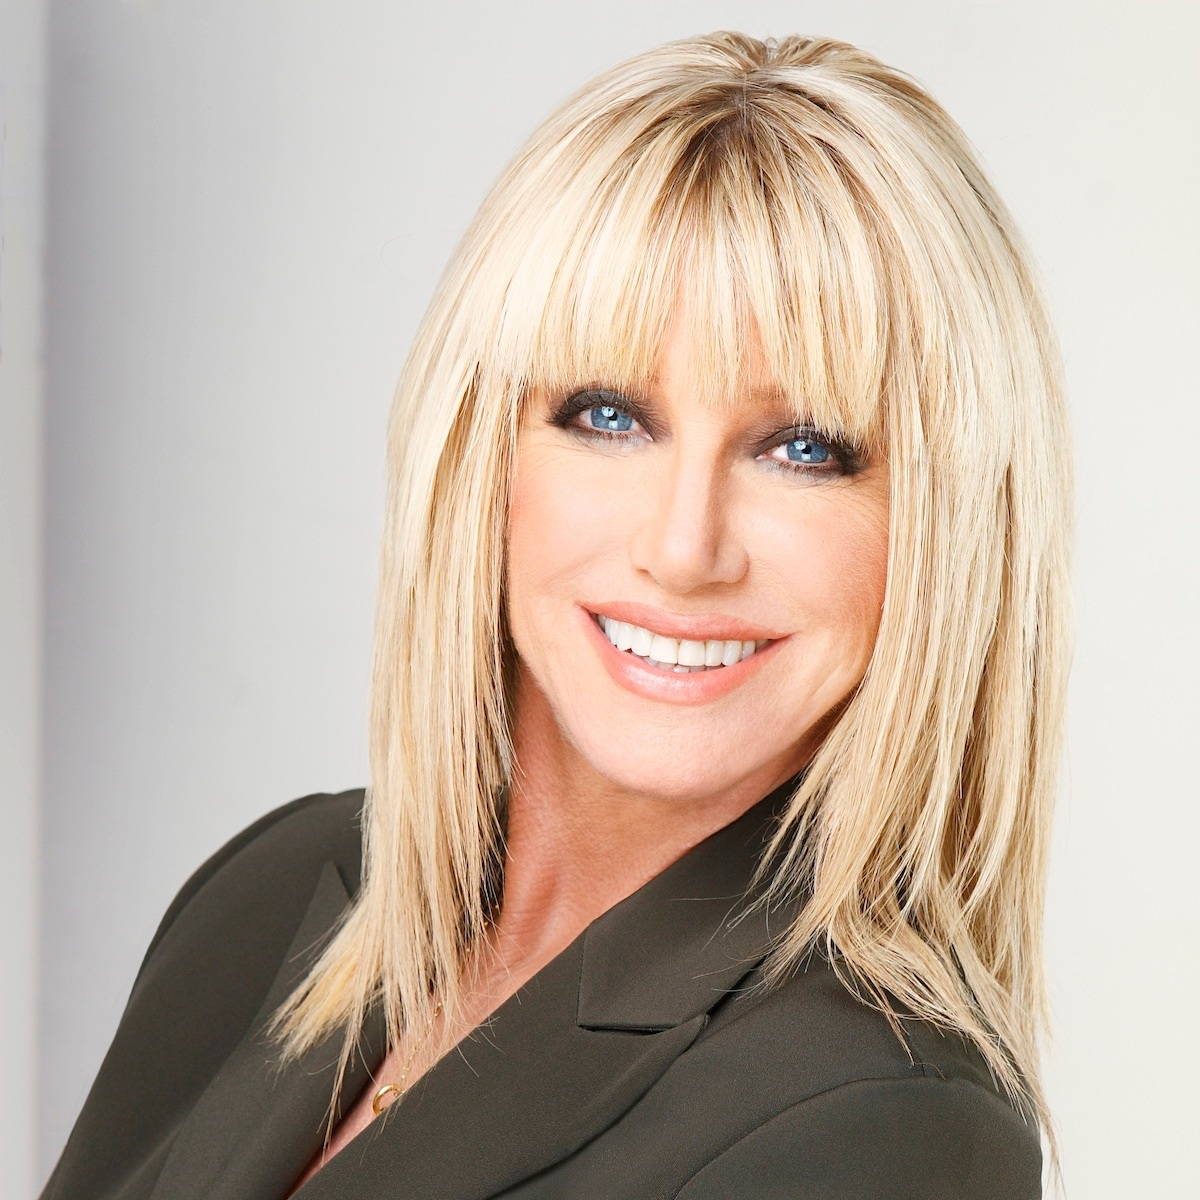 Suzanne Somers - Health Advocate